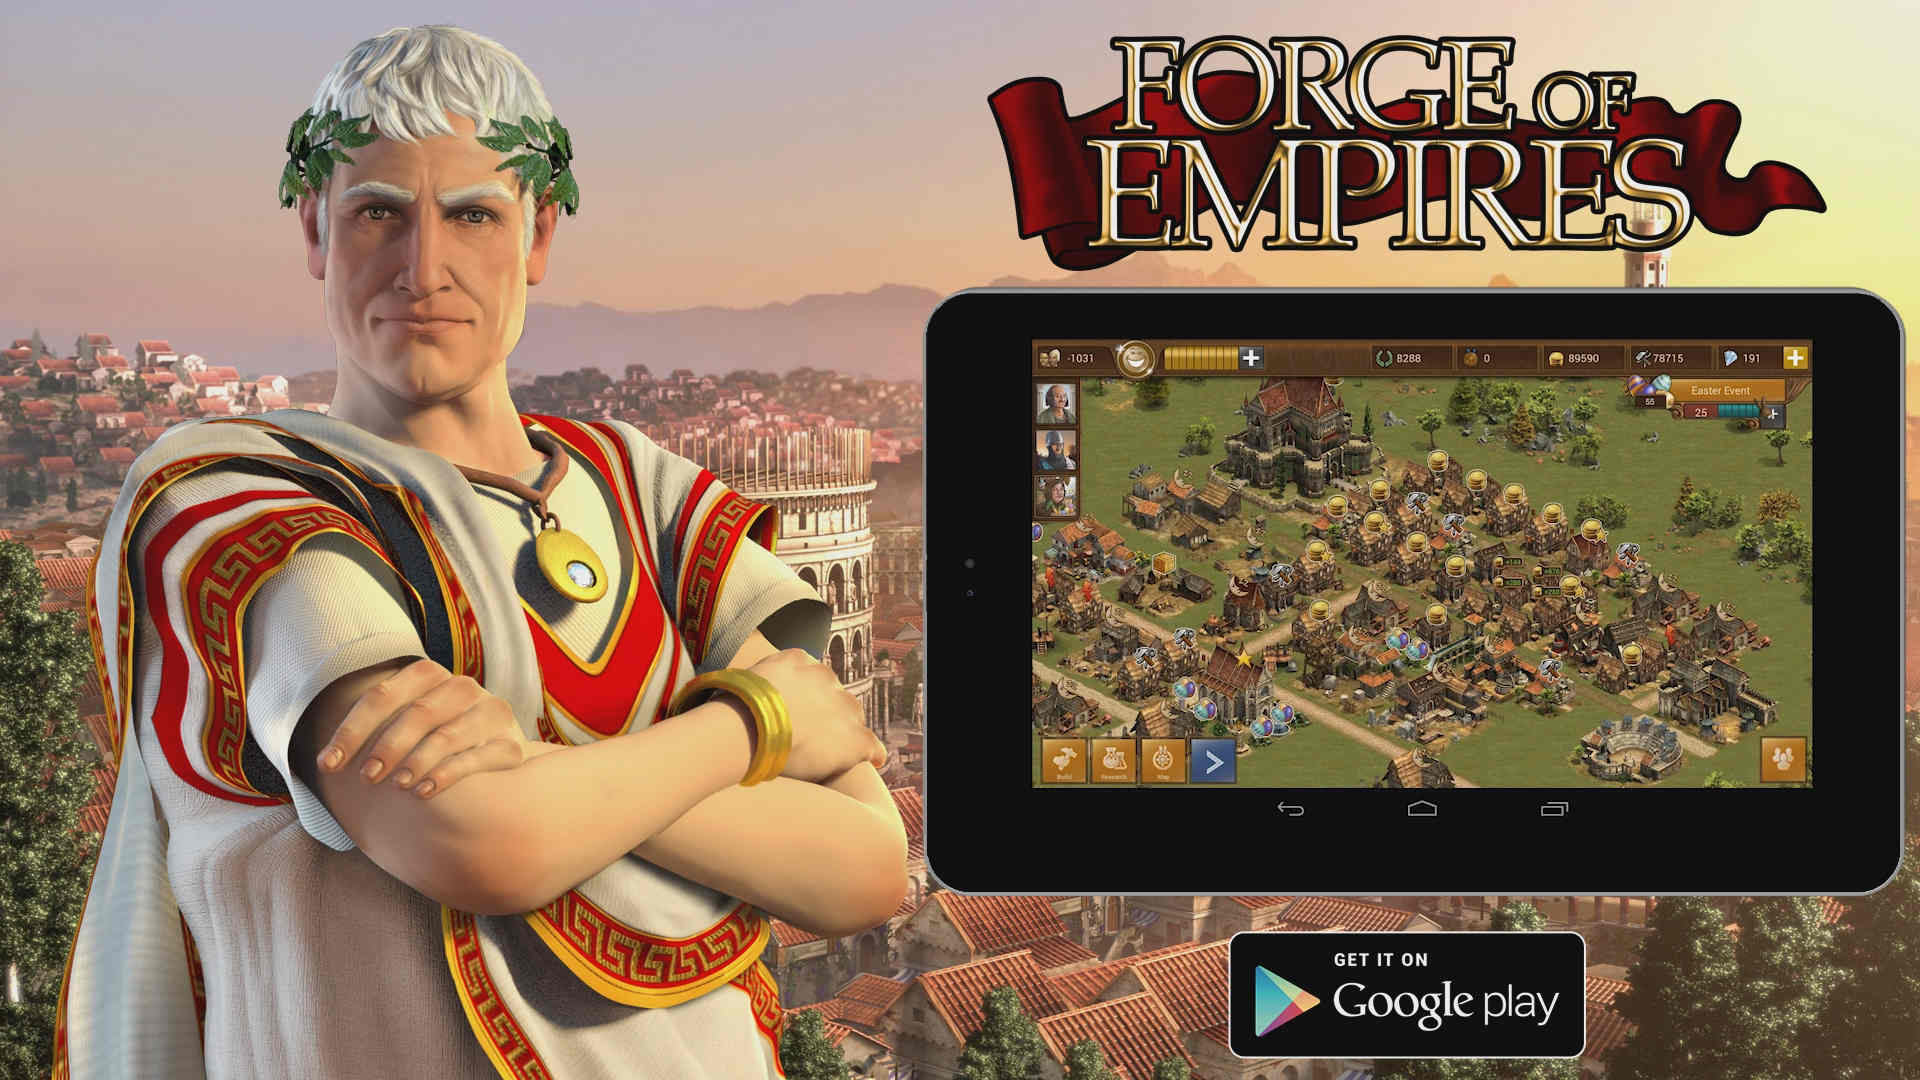 Forge of empires porn exposed pic